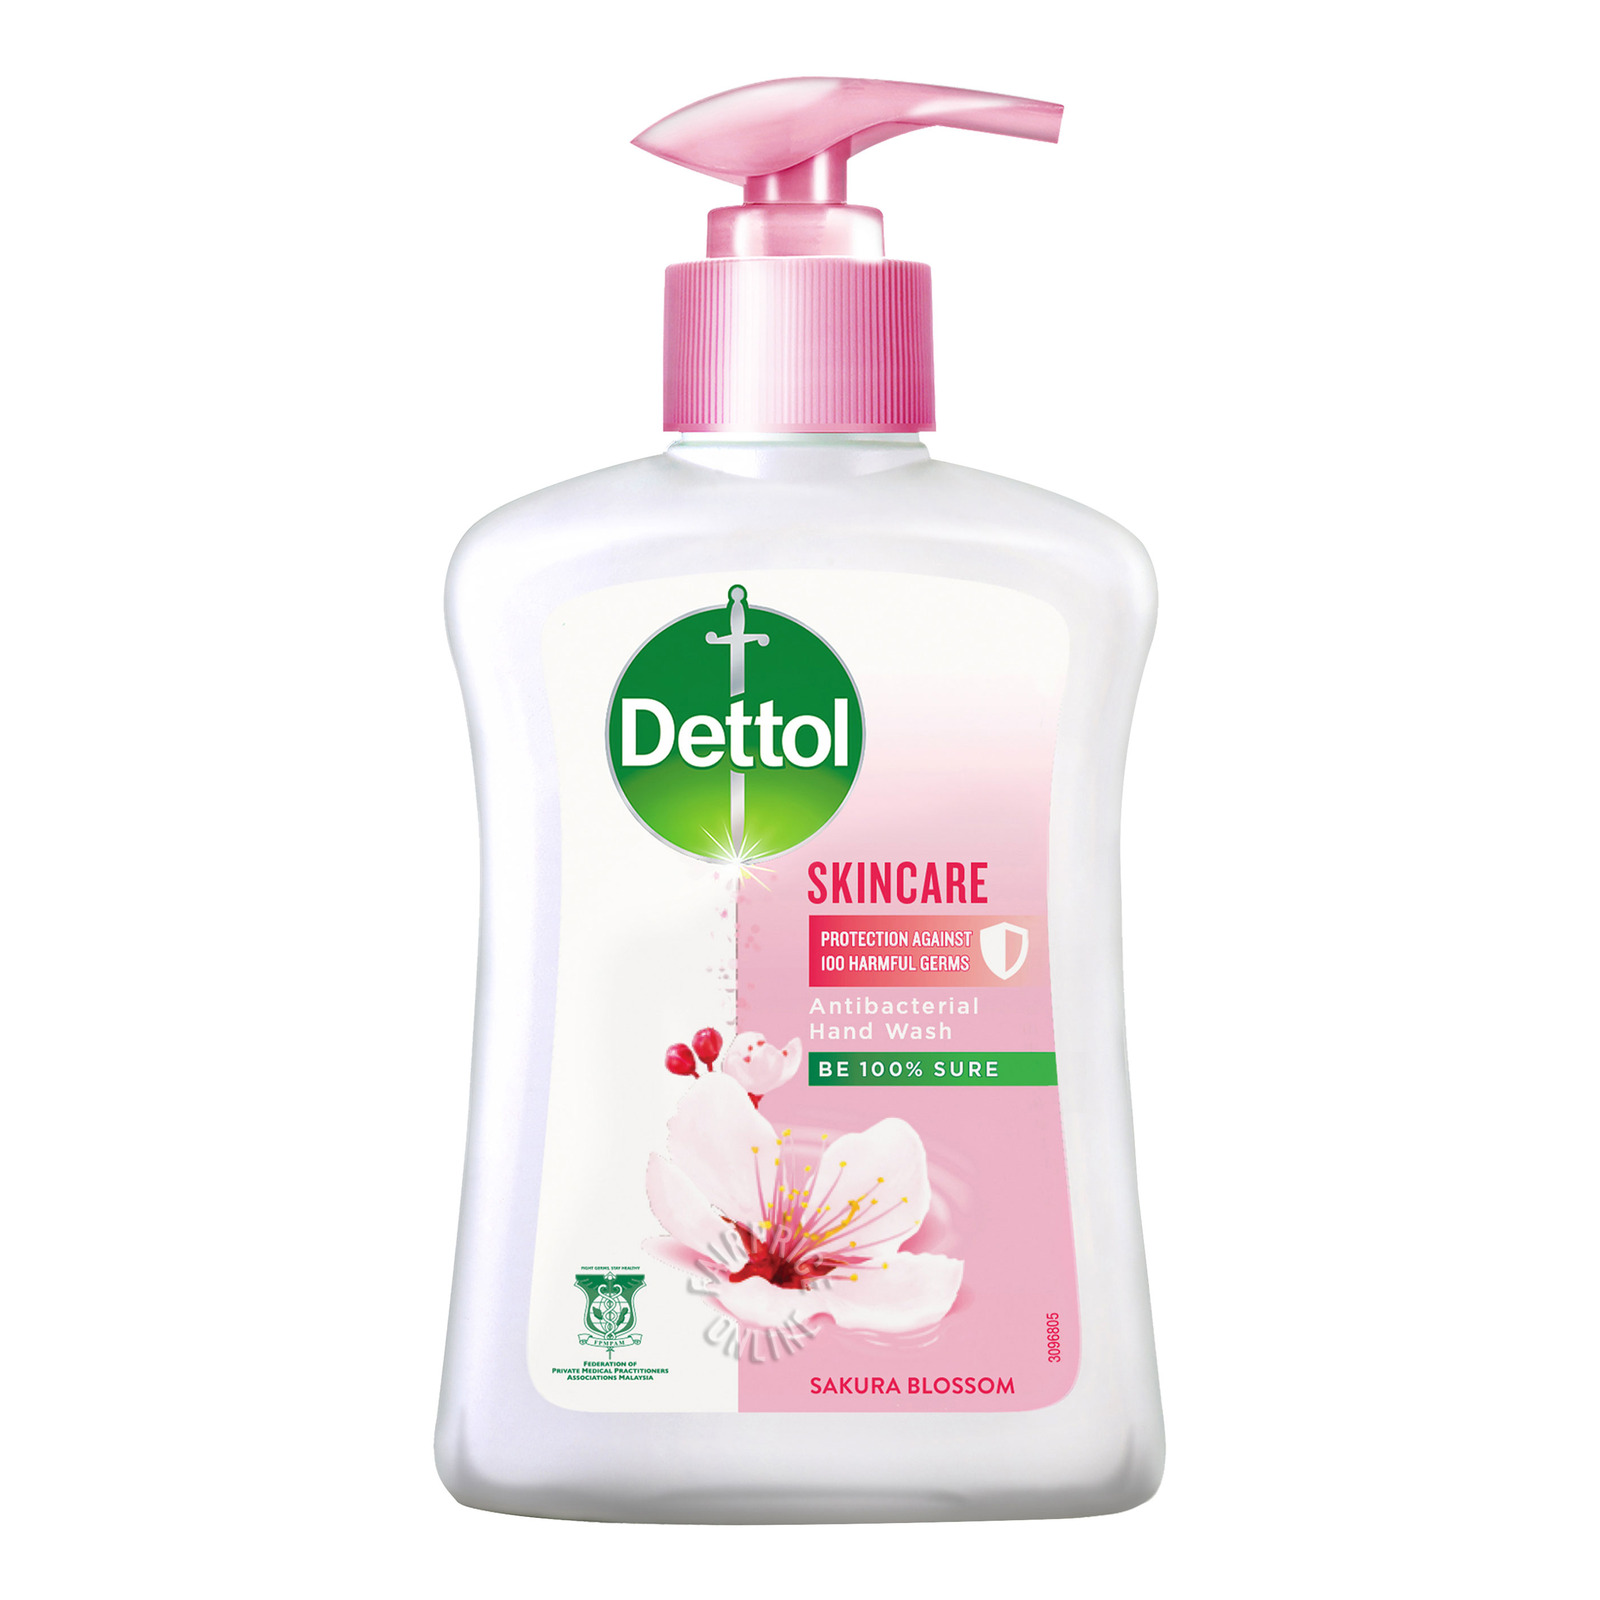 Dettol Anti-Bacterial Hand Wash - Skincare